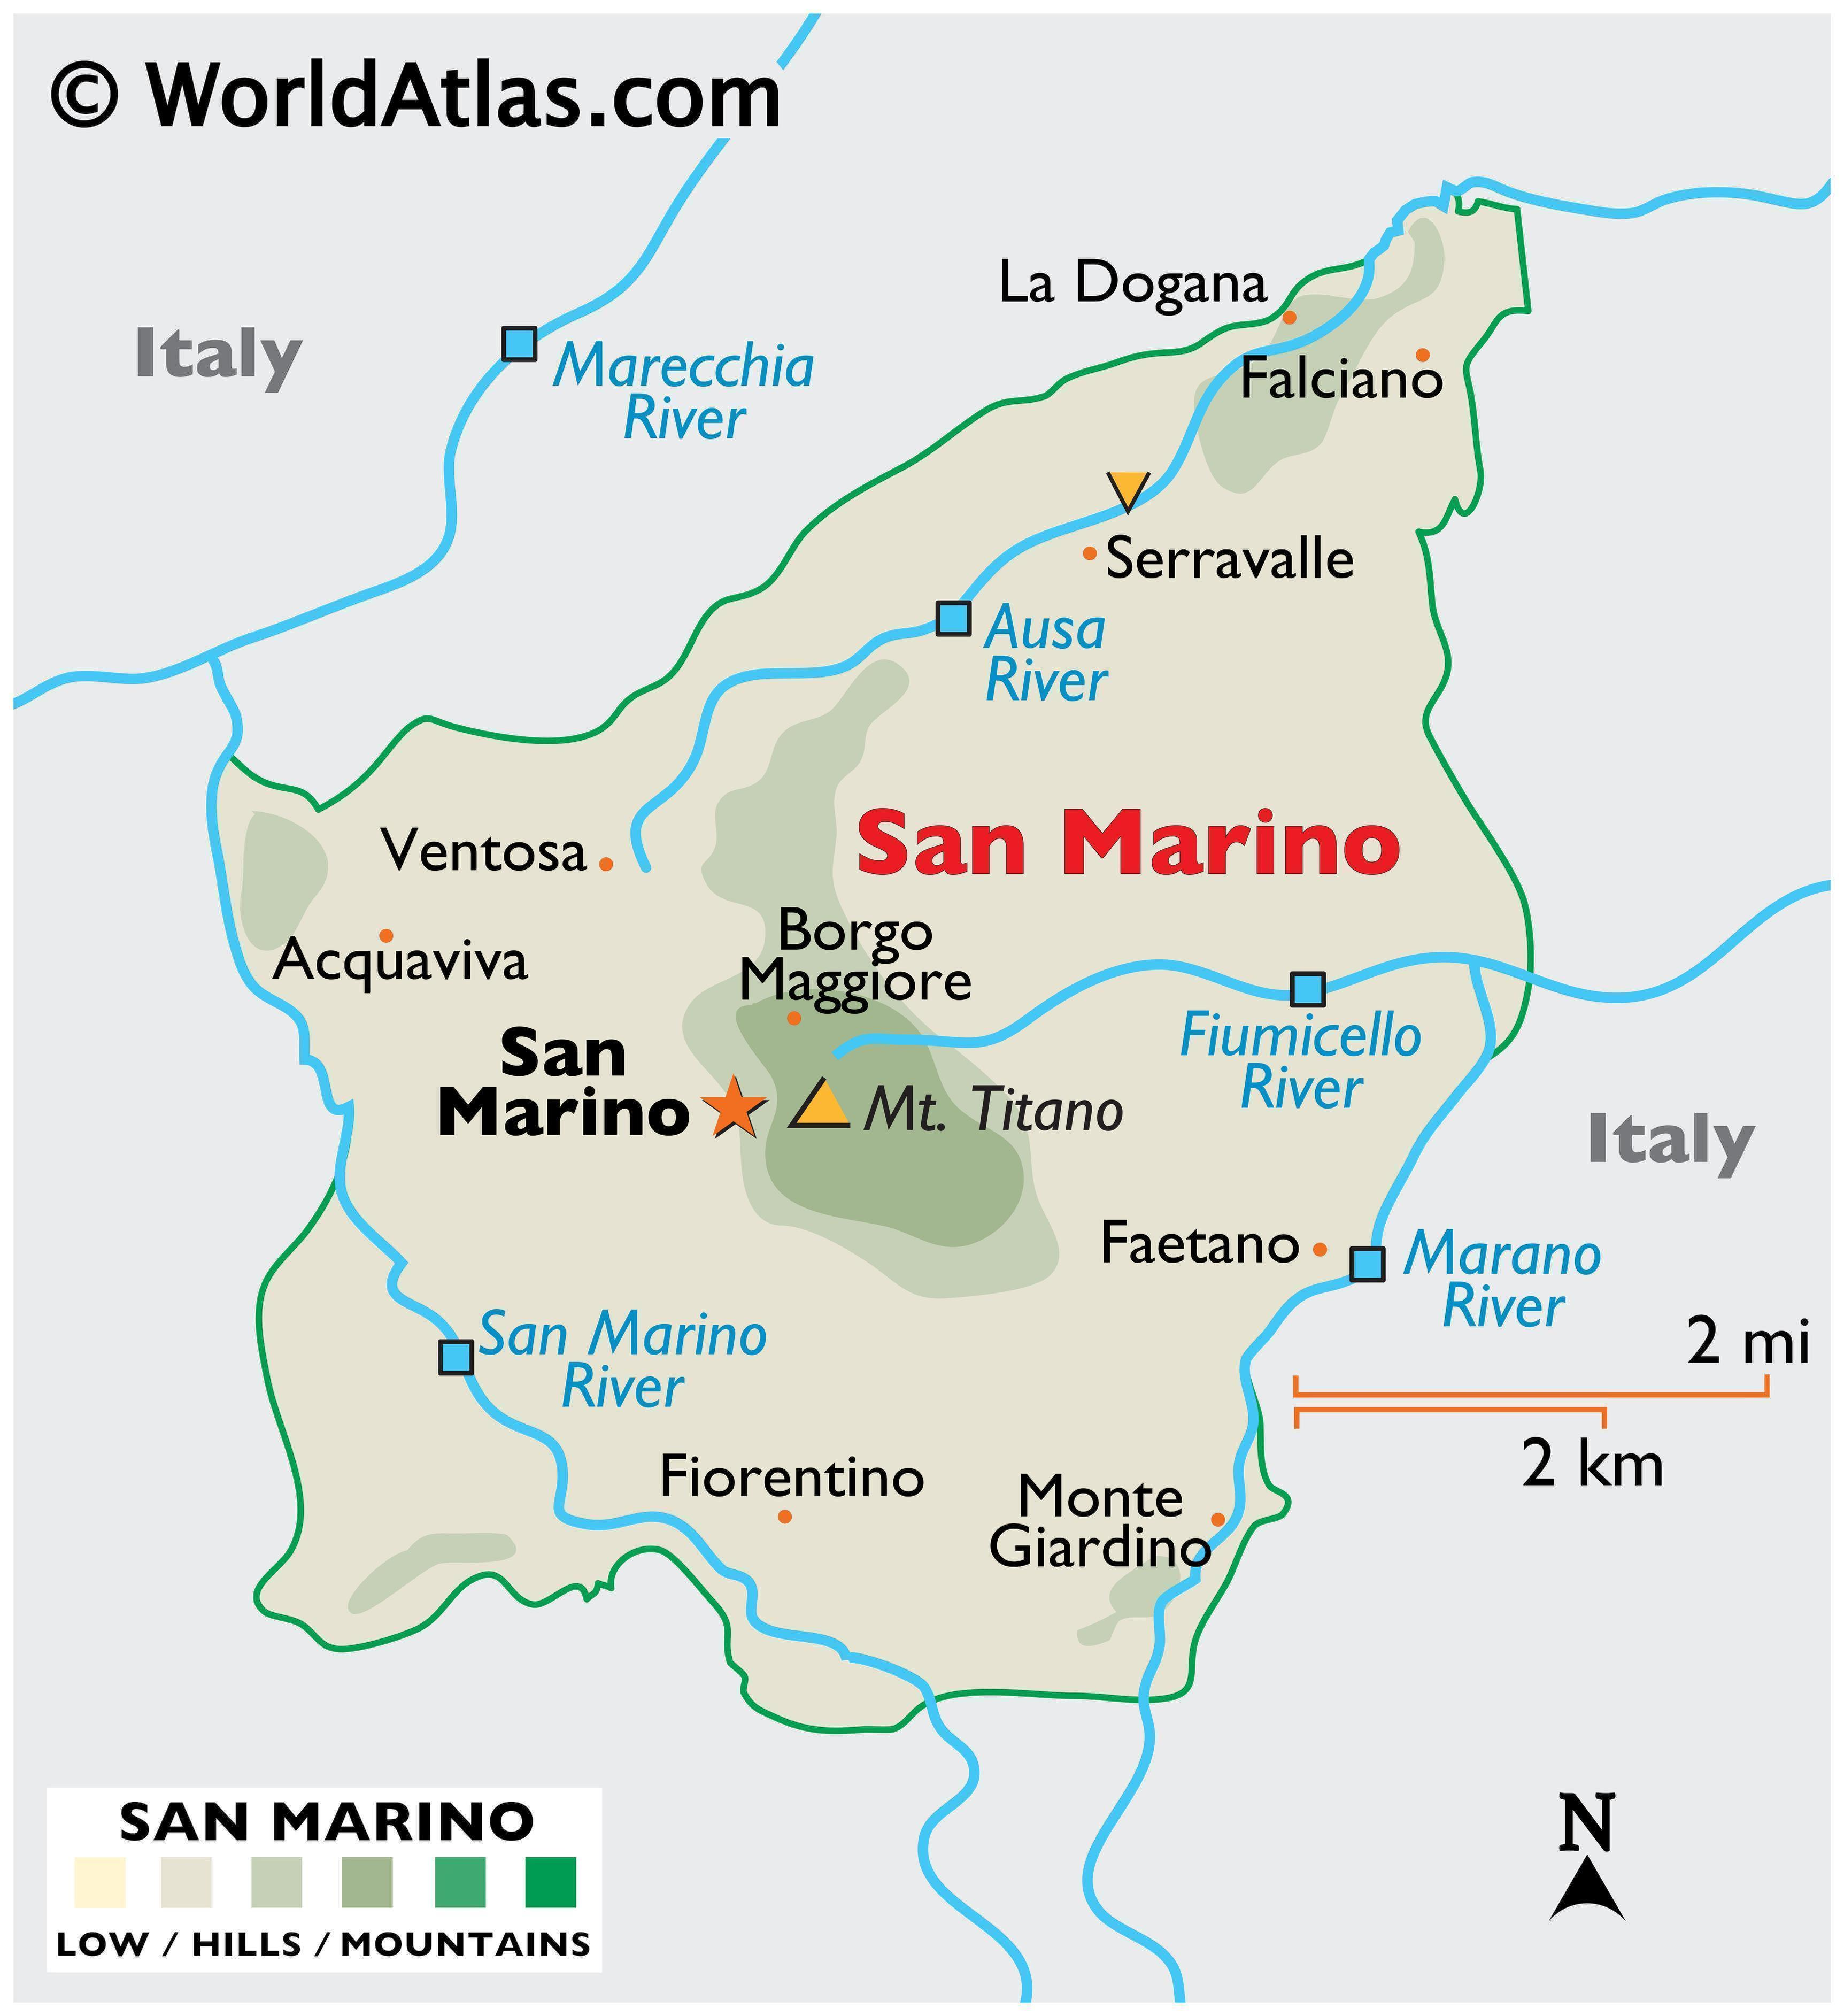 Physical Map of San Marino showing its relief, extreme points, rivers, etc.